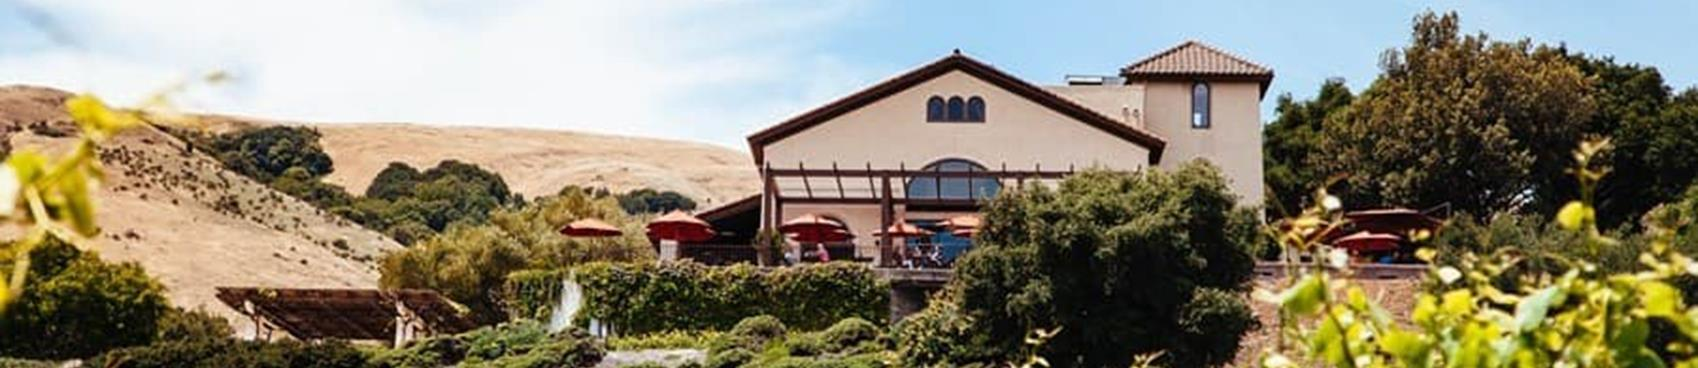 A image of Gloria Ferrer Caves & Vineyards